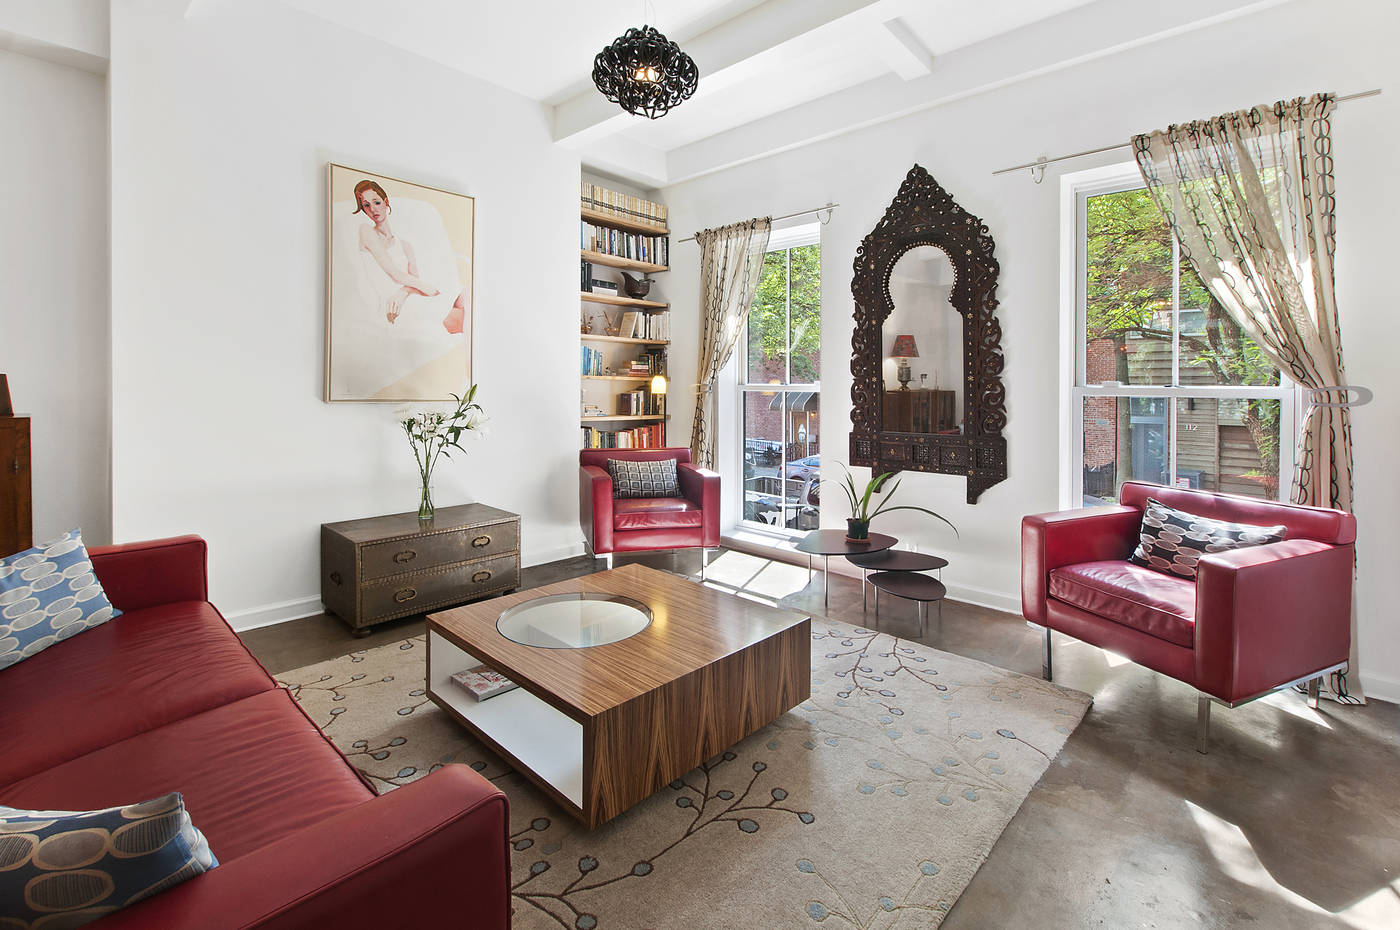 125 Butler Street, Cool Listing, Townhouse, Brooklyn Townhouse for Sale, Boerum Hill, NYC Real Estate, Multi-family House, Renovated Townhouse, Interiors, Brooklyn Backyard